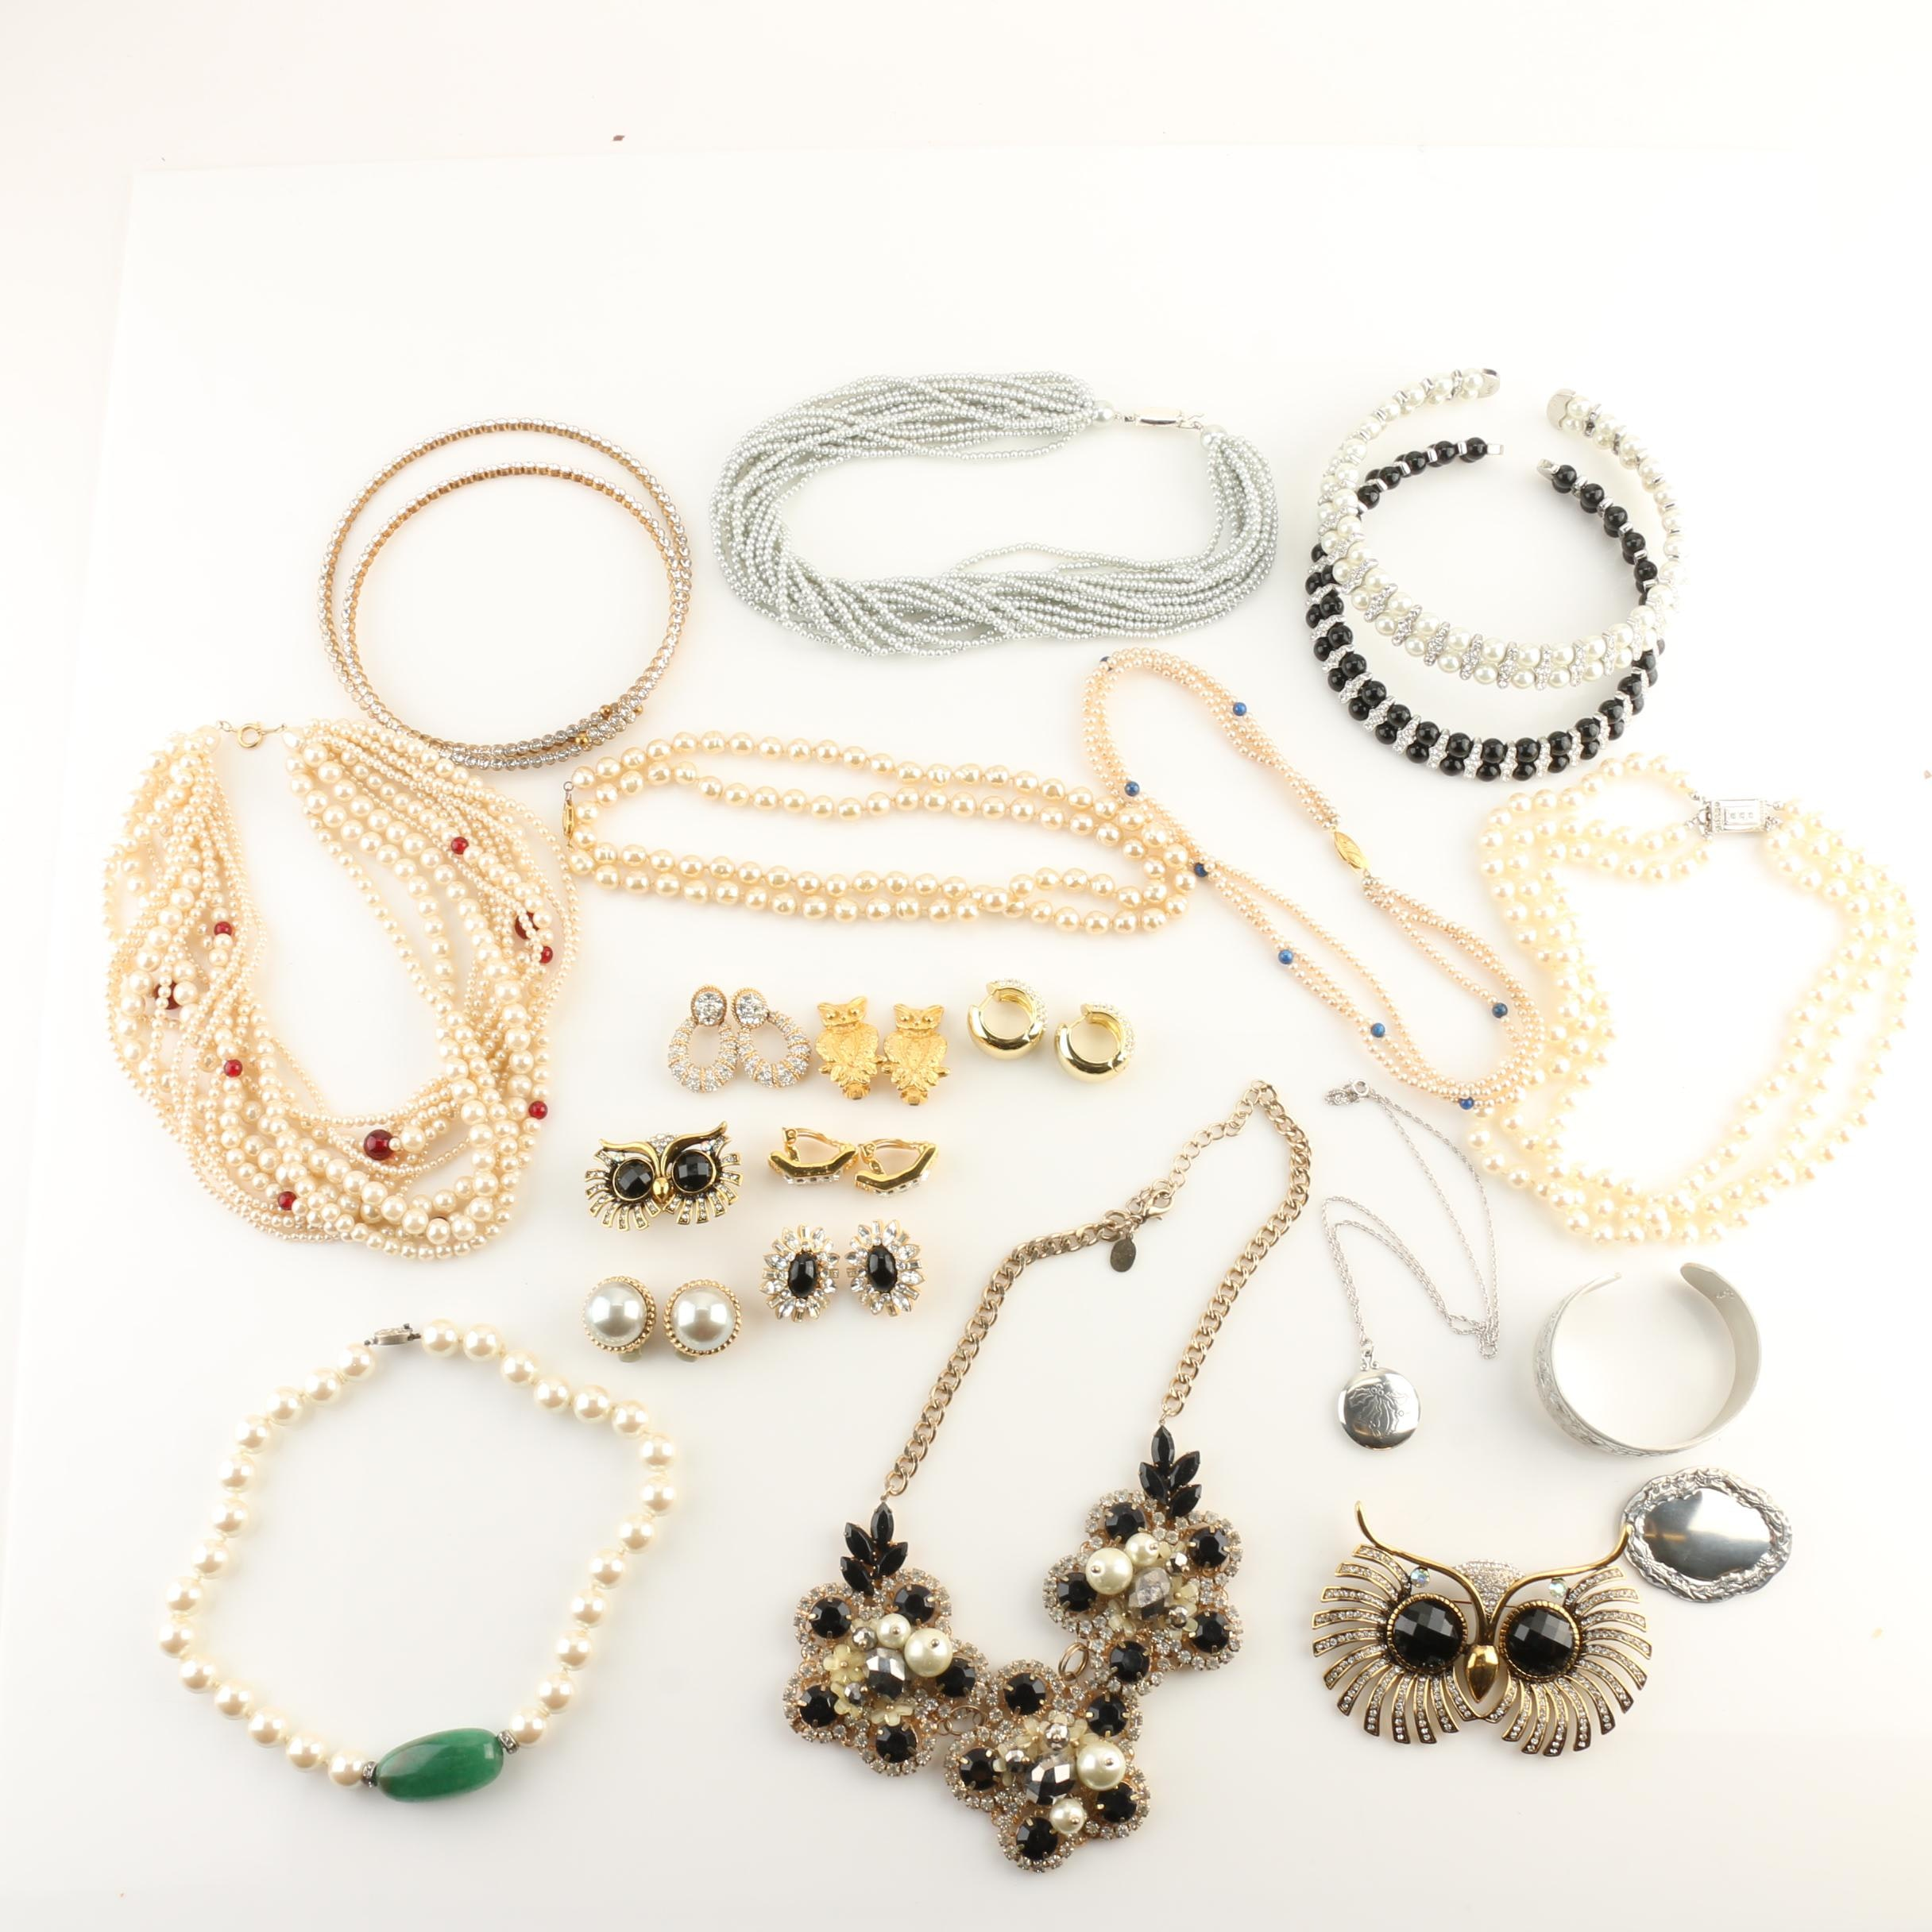 Signed Jewelry Assortment Including Imitation Pearl, Ciner, and Sterling Silver